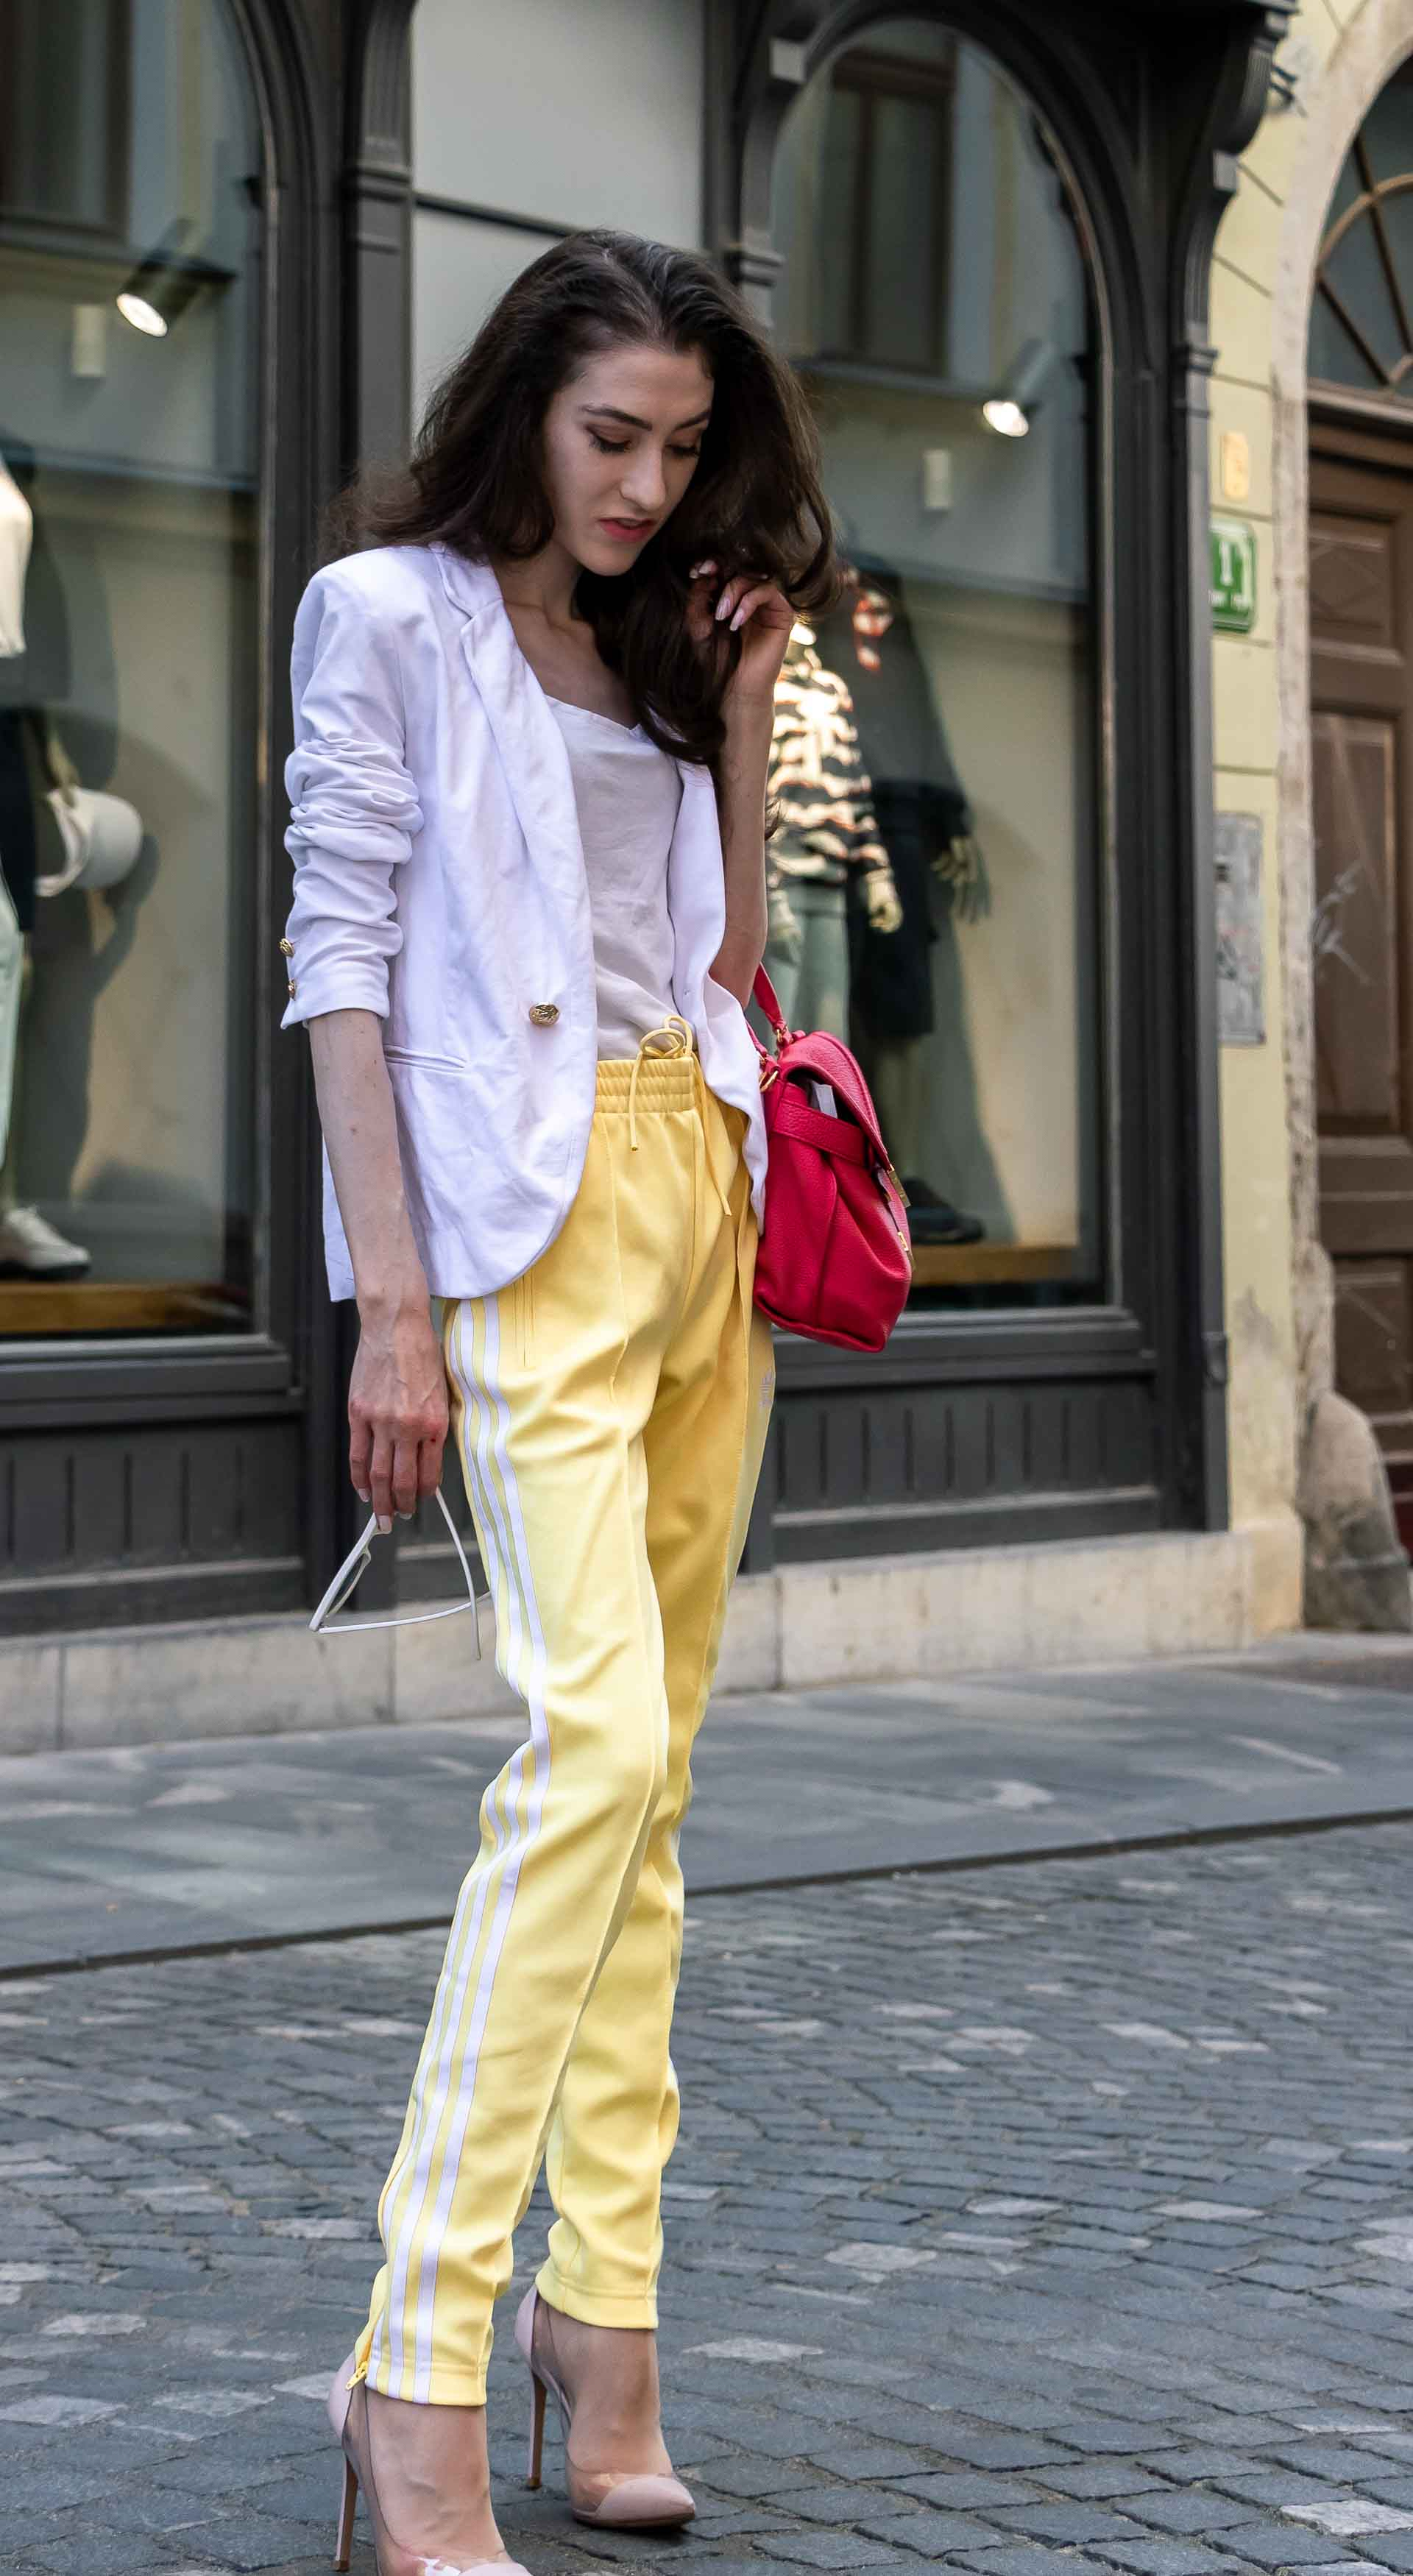 Veronika Lipar Fashion Editor of Brunette from Wall Street dressed in white blazer, white H&M t-shirt, yellow Addidas track pants, See by Chloé pink top handle bag, Adam Selman x Le Specs white cat eye Lolita sunglasses, pink blush Gianvito Rossi plexi pumps on the street in the morning